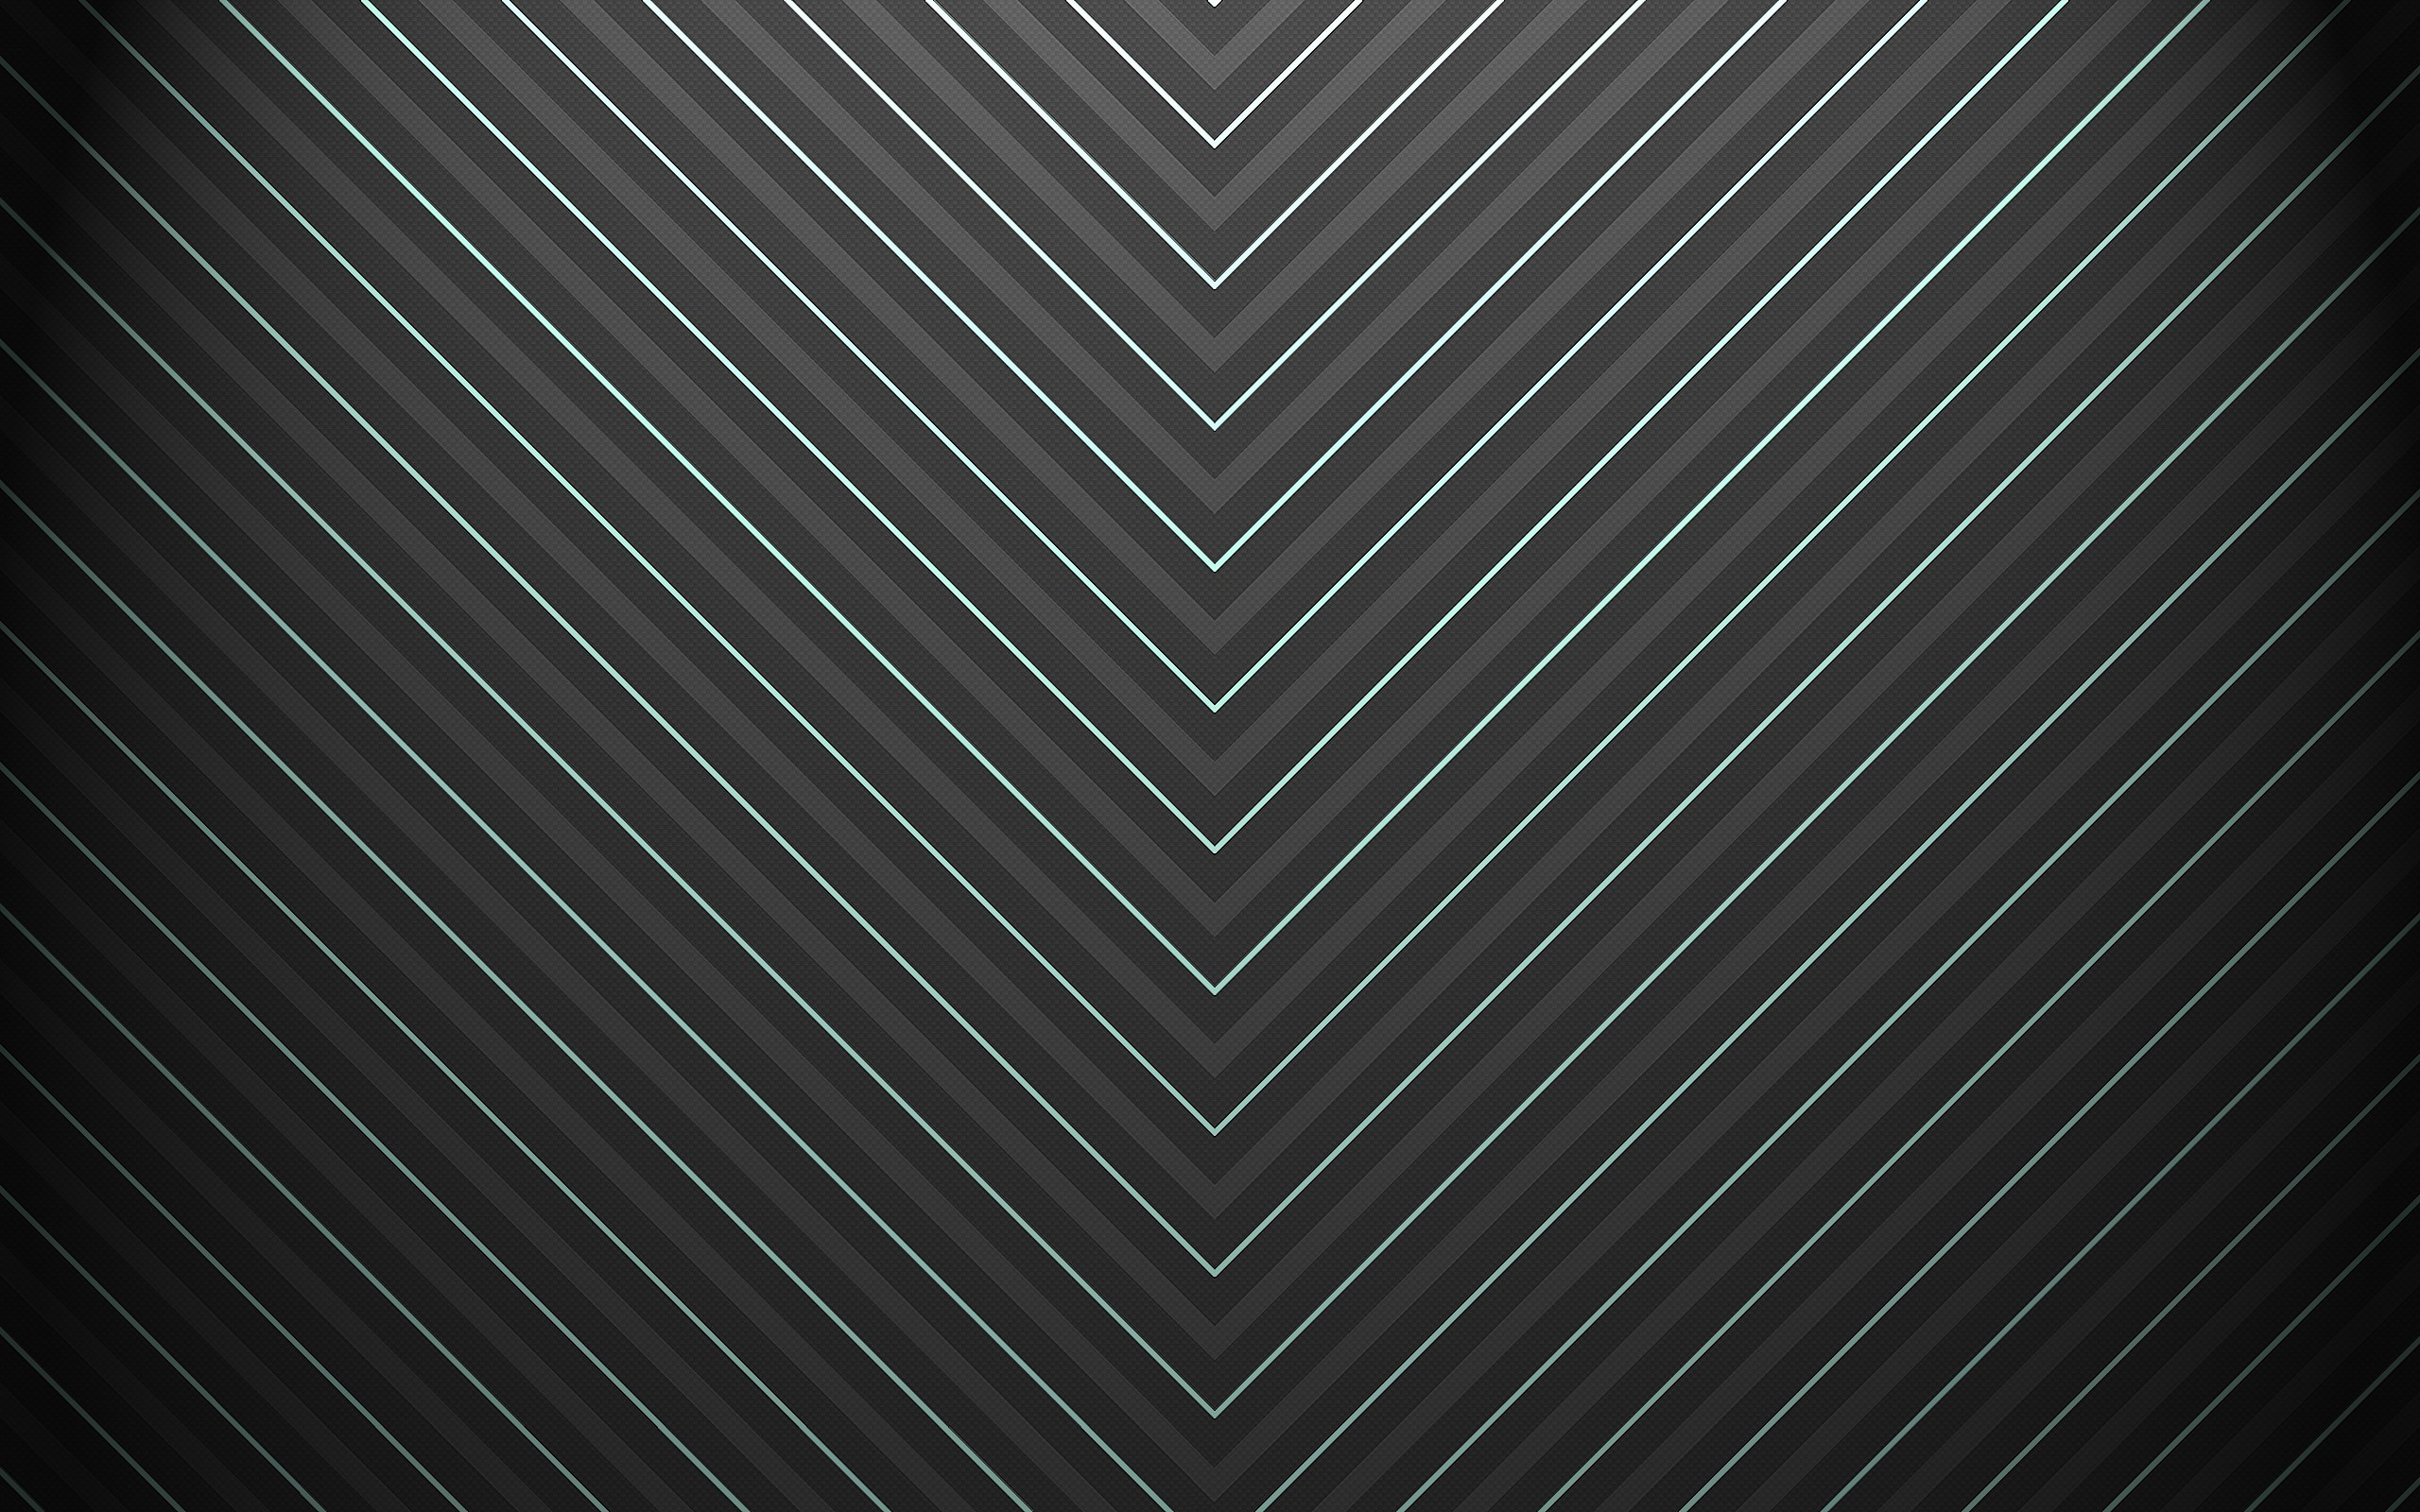 Arrow Line in black and gray background wallpaper